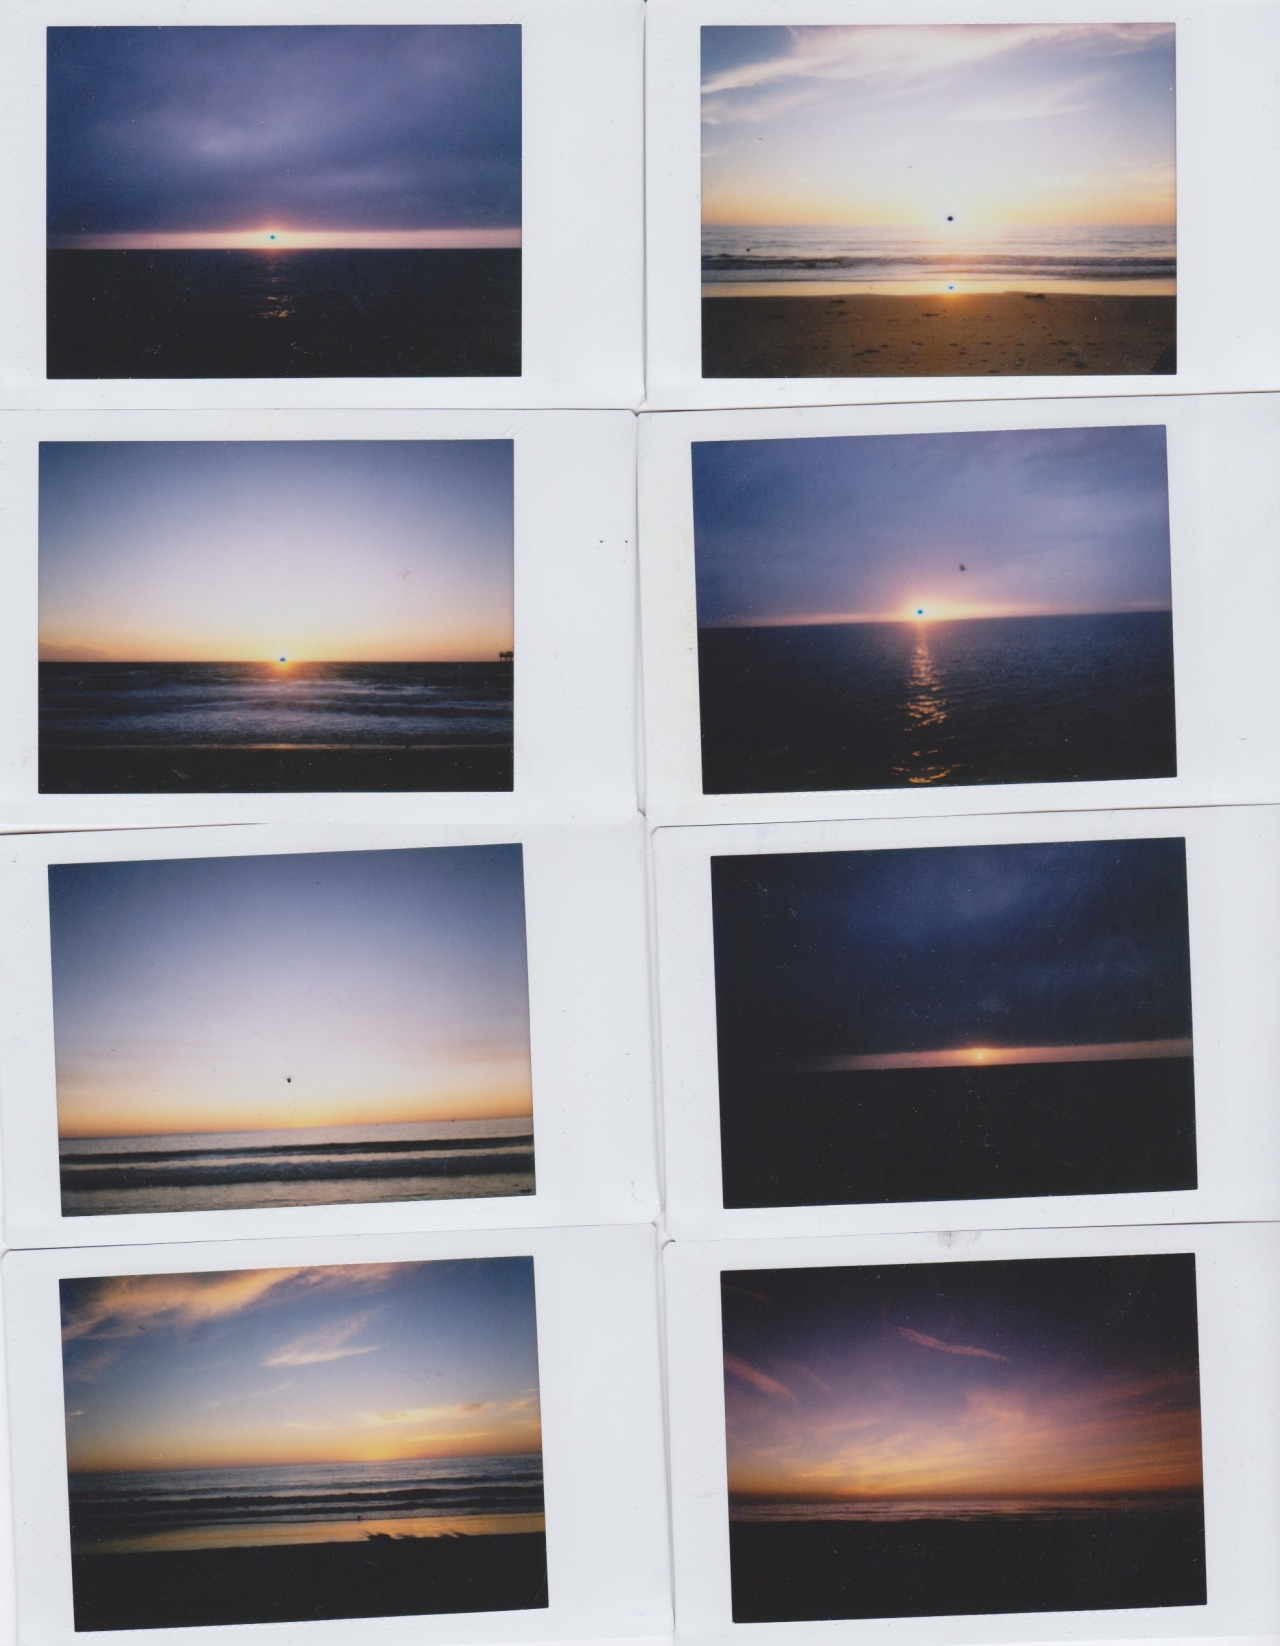 vilicity:   A collection of sunset photos that I just found.